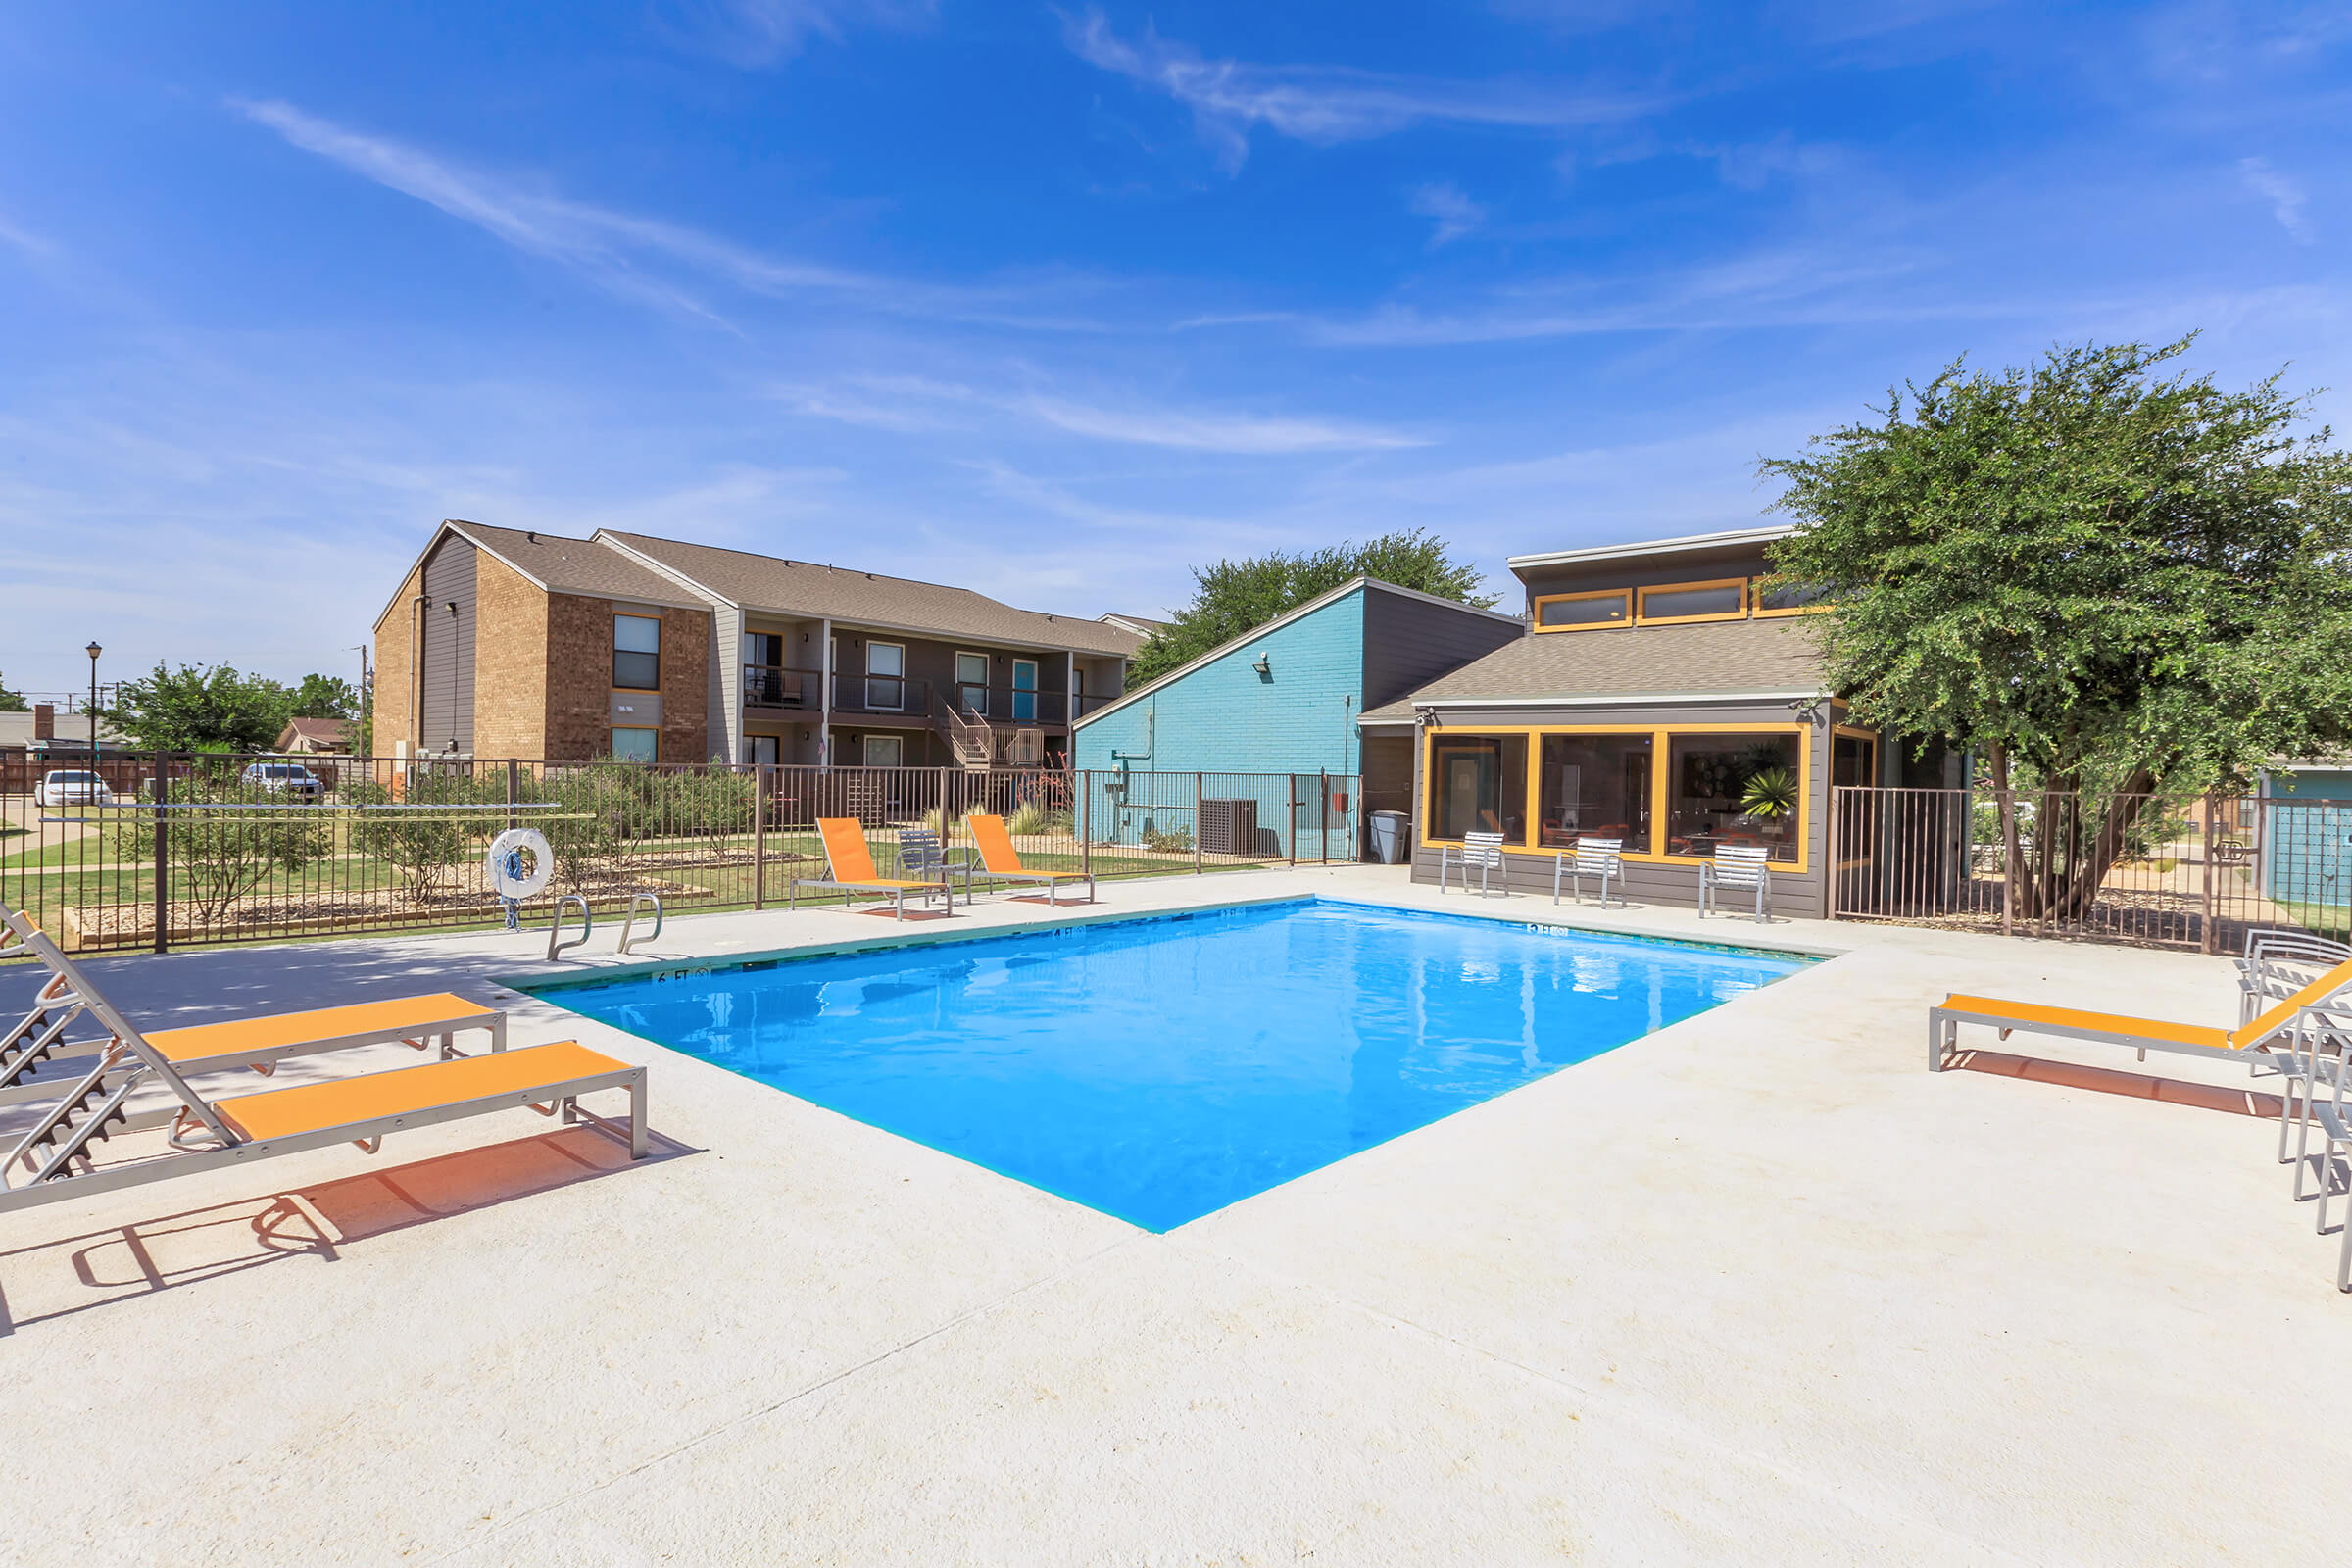 The Ranch at Midland - Apartments in Midland, TX